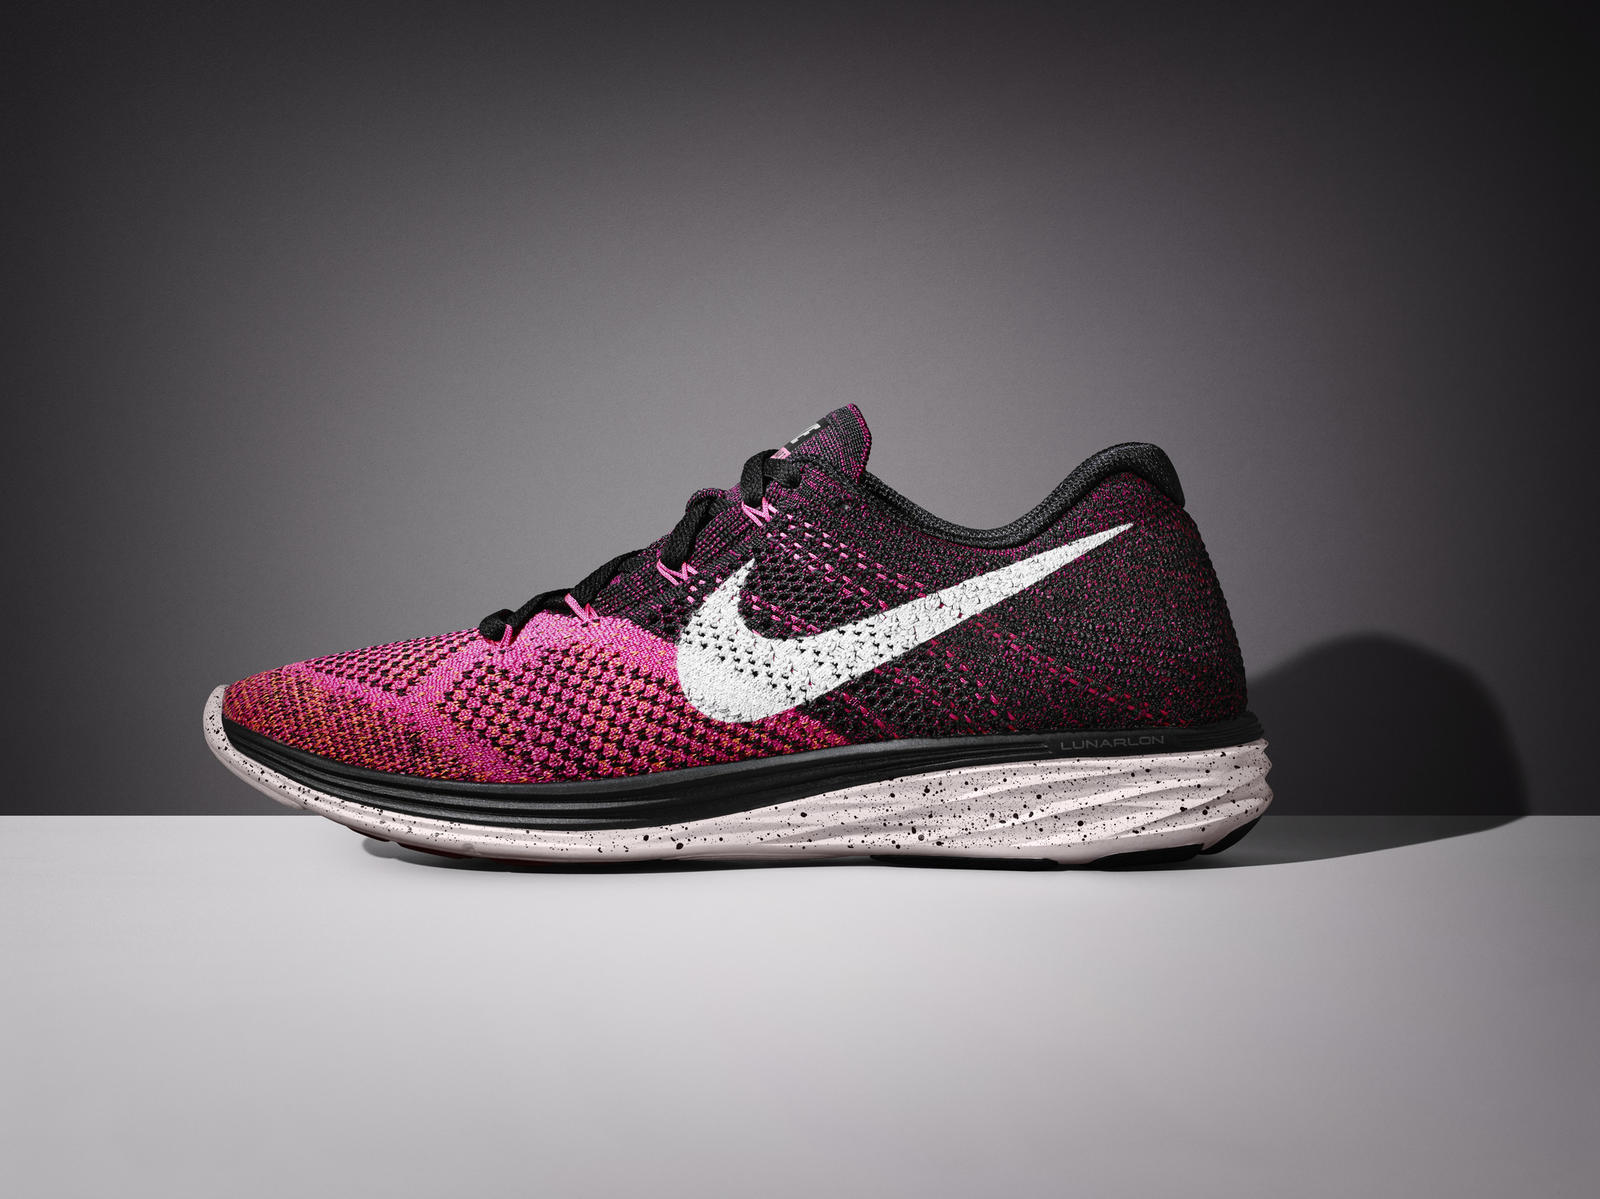 nike flyknit lunar 3 made light to go long nike news. Black Bedroom Furniture Sets. Home Design Ideas